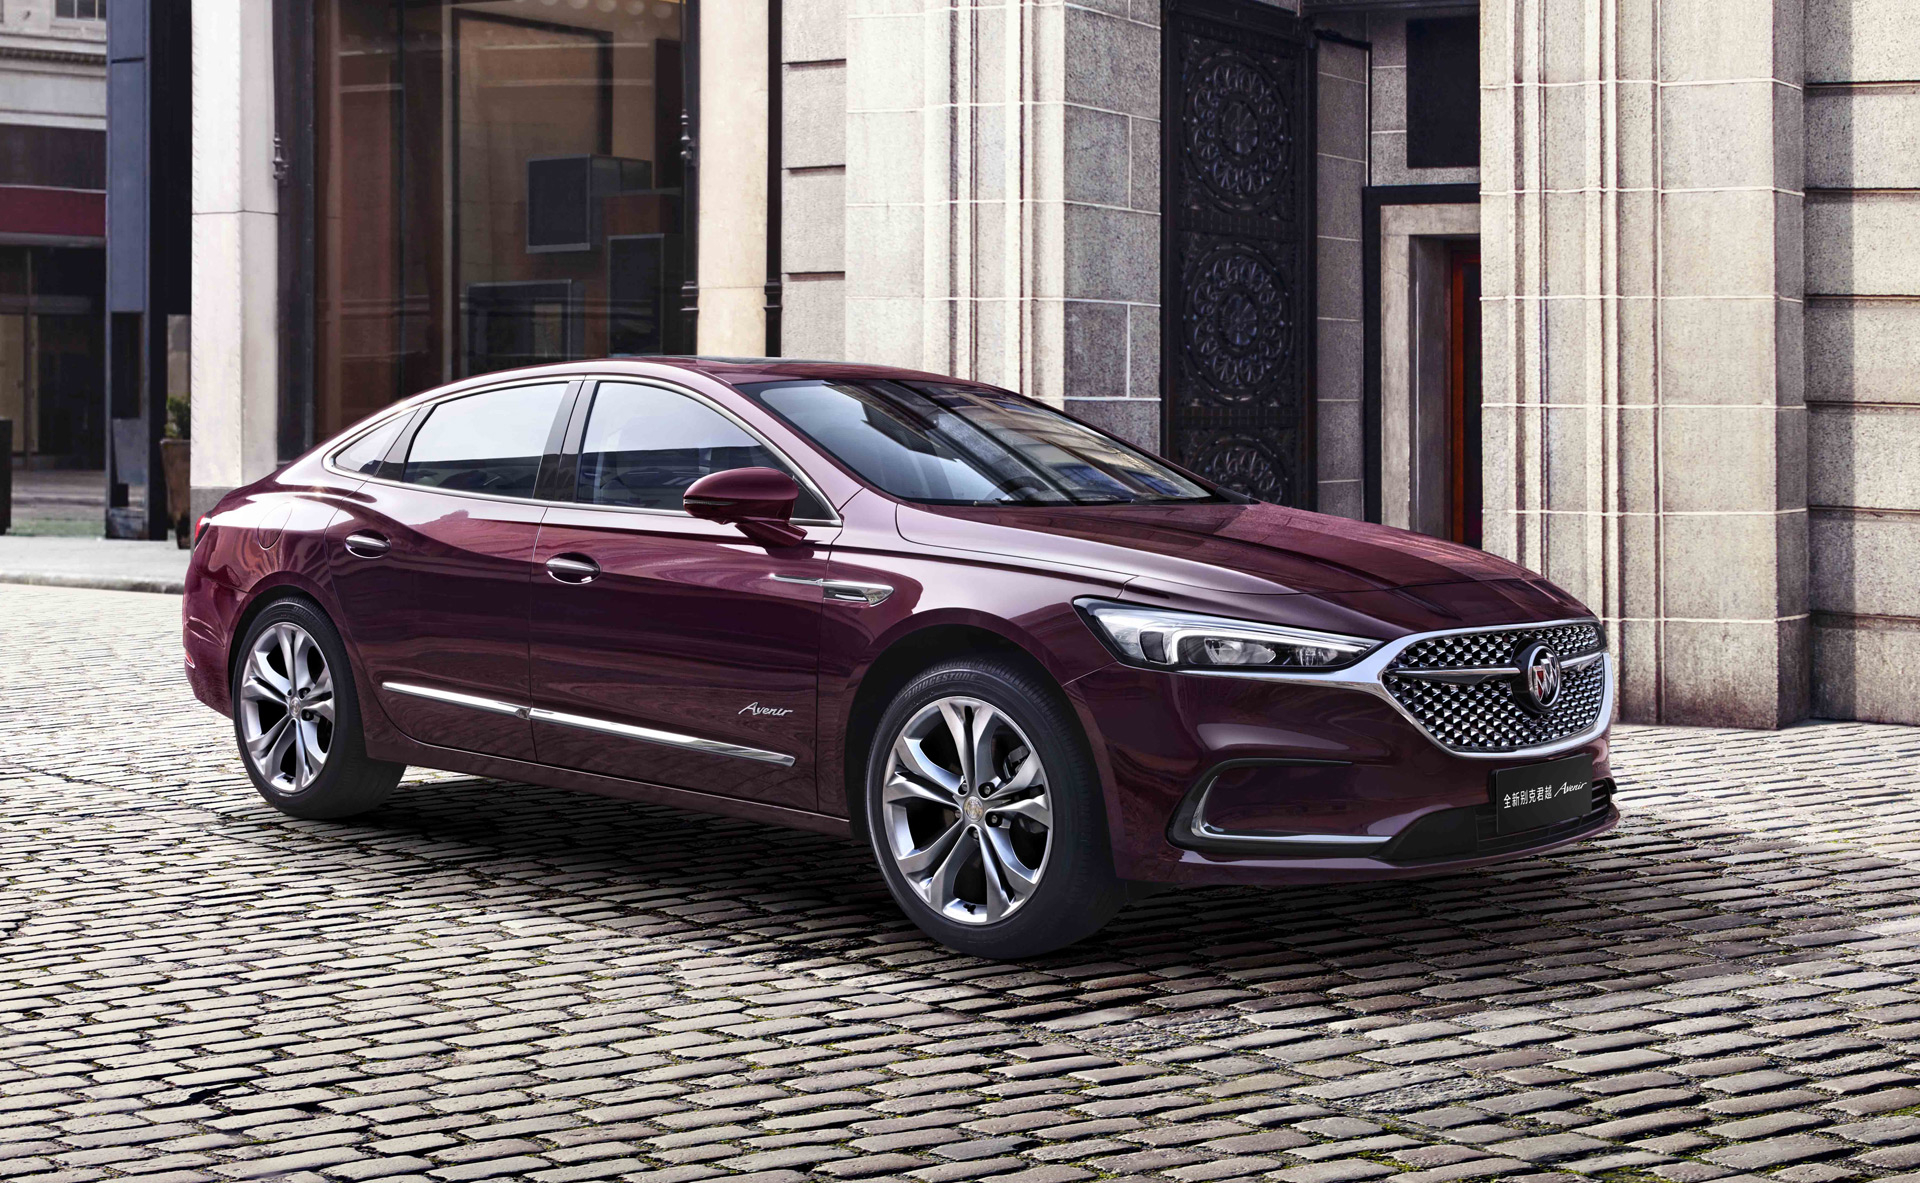 2020 Buick Lacrosse Made Handsome Just As It's Dropped In Us What Will The New 2022 Buick Lacrosse Look Like